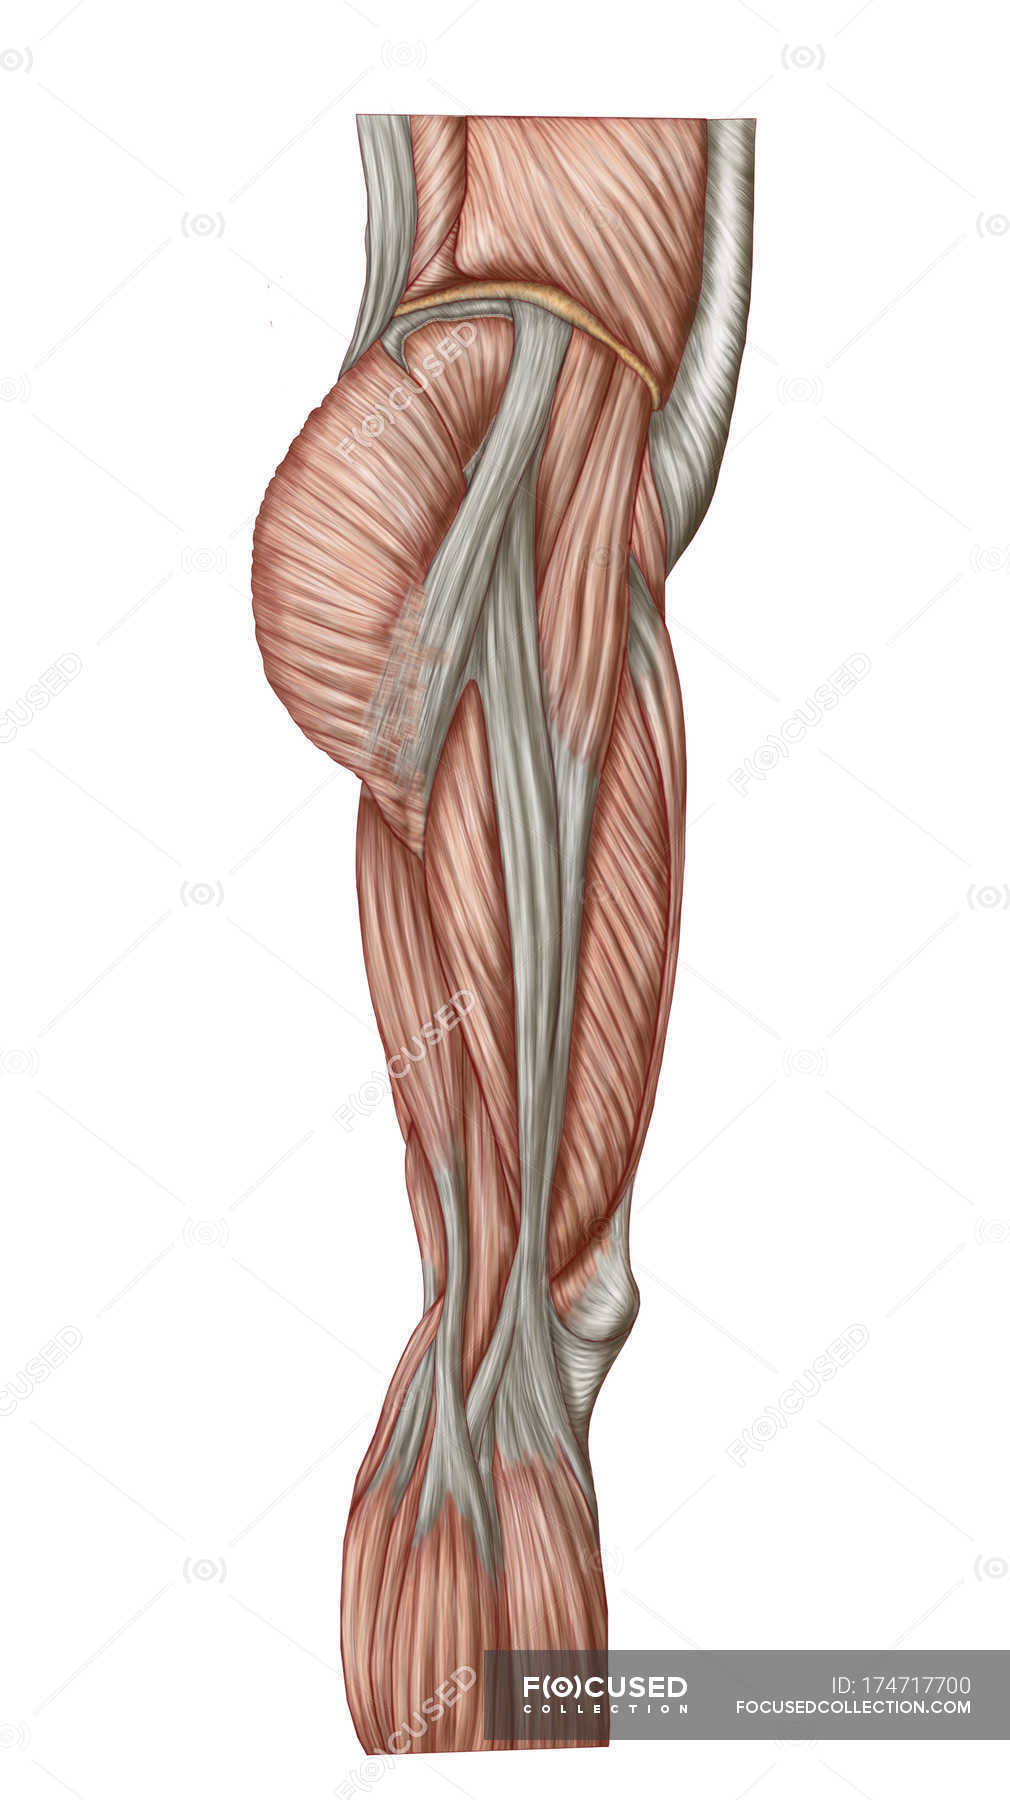 Anatomy of human thigh muscles — Stock Photo | #174717700